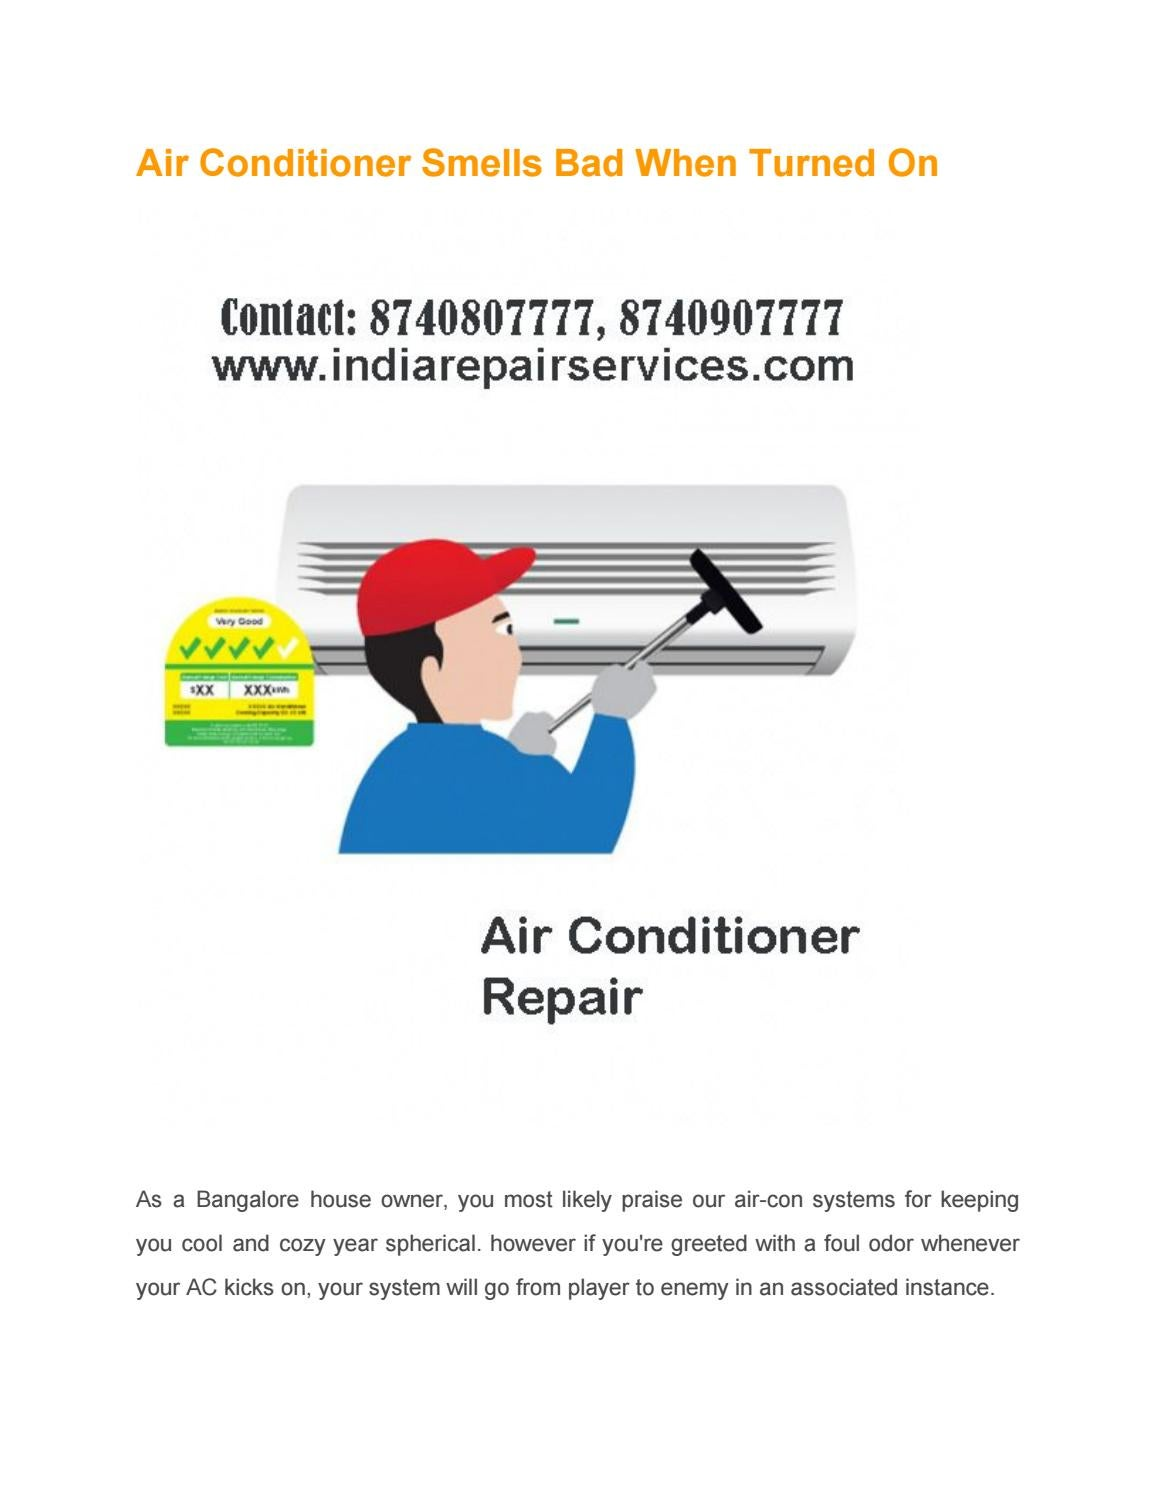 Air Conditioner Smells Bad When Turned On >> Air Conditioner Smells Bad When Turned On By Indiarepairs